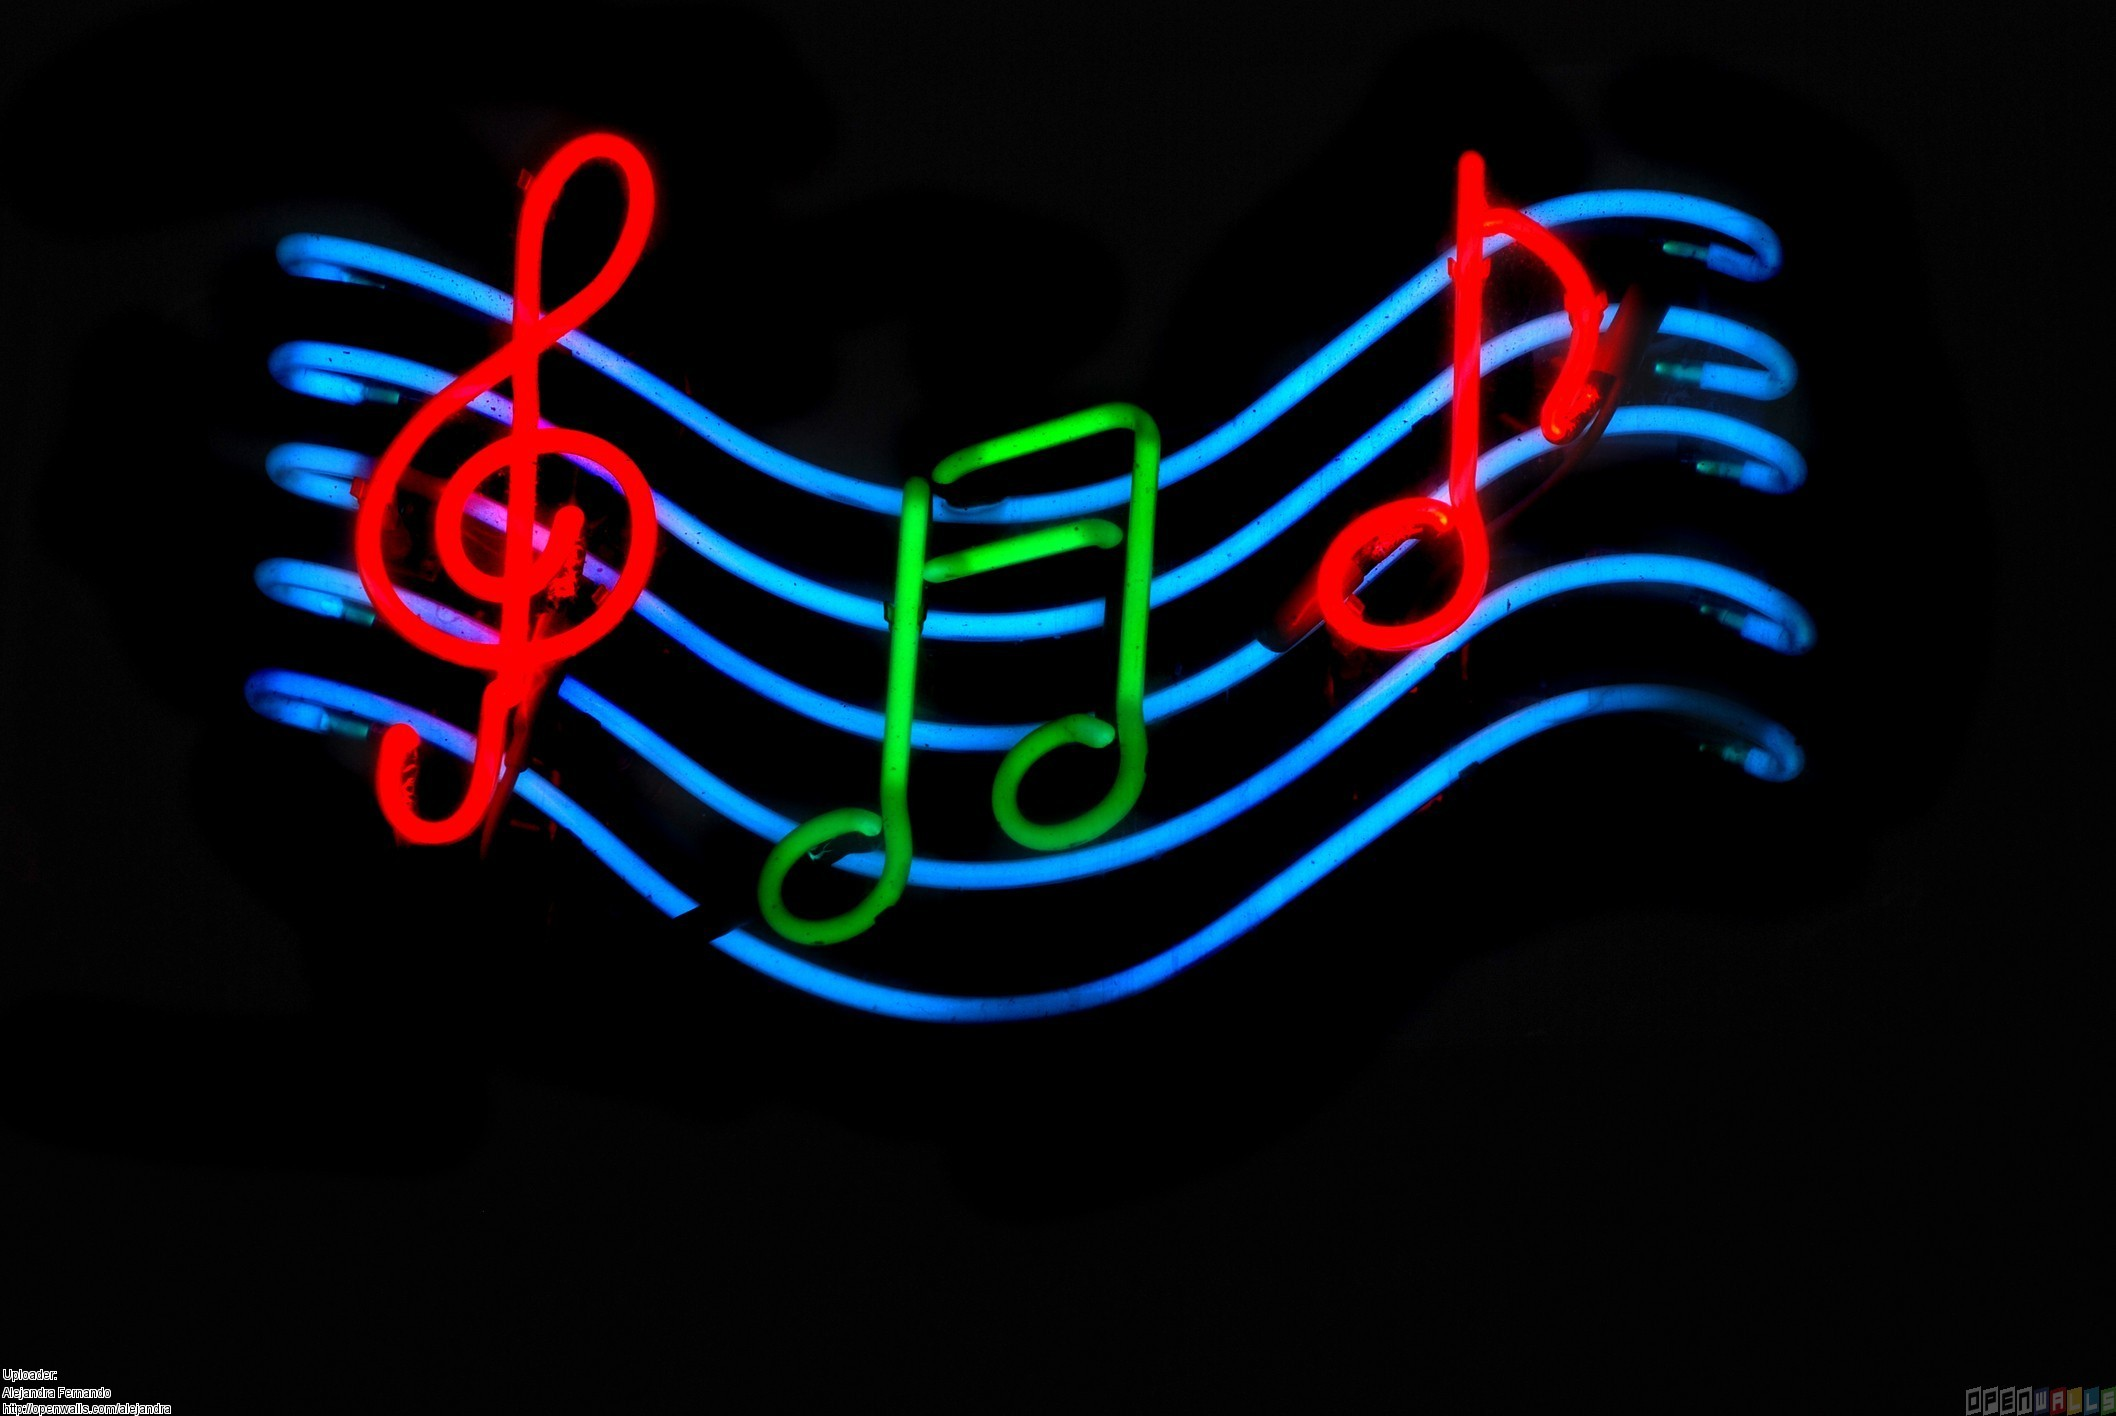 Neon Music Notes Wallpaper: Colorful Music Notes Wallpaper